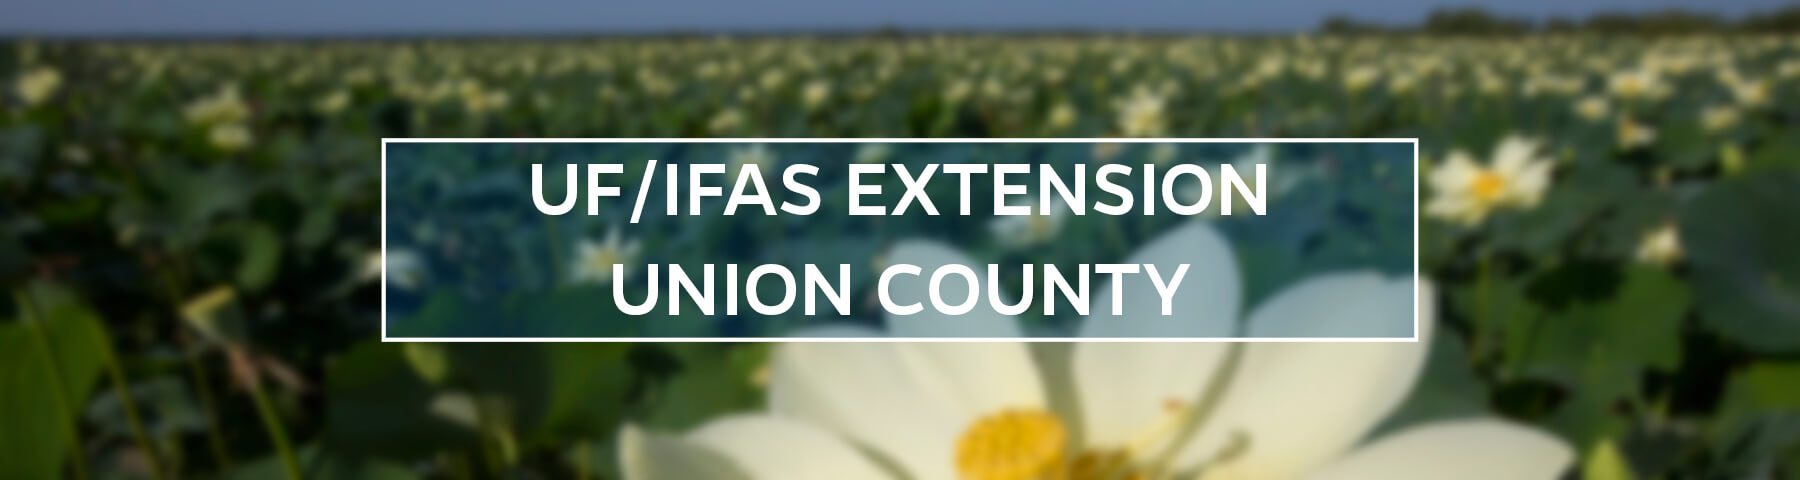 UF/IFAS Extension Union County